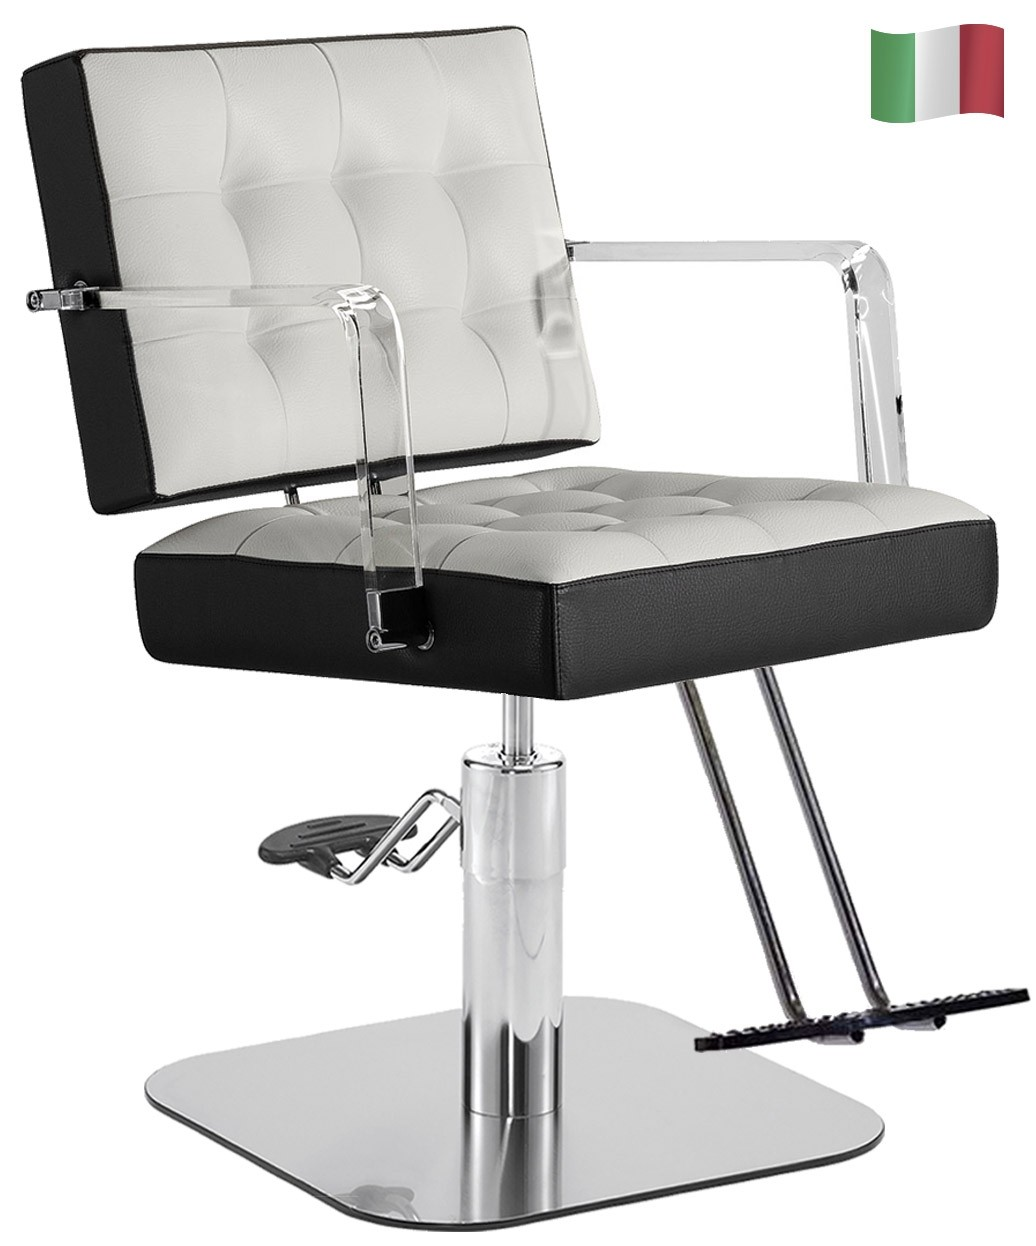 Salon ambience sh 420 diamond styling chair for Buy rite salon